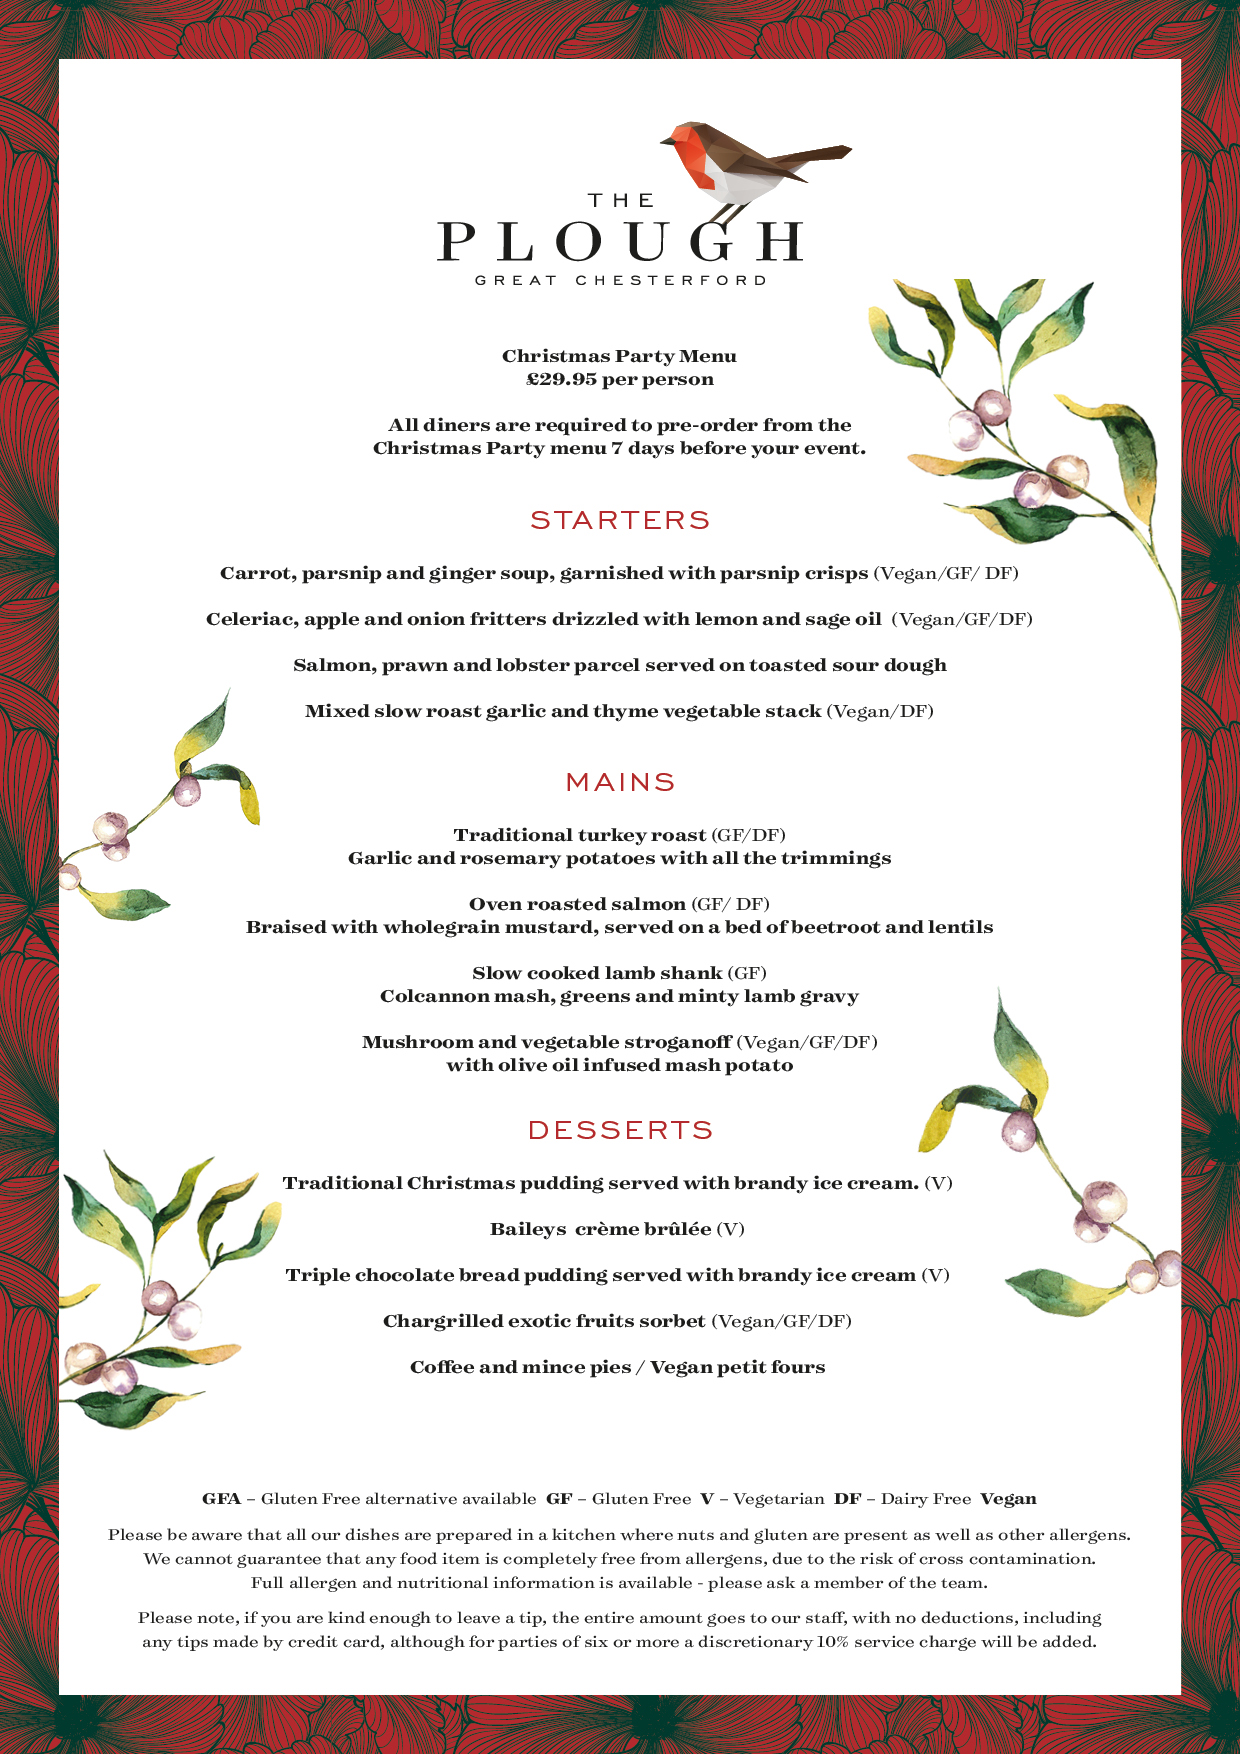 210mmX297mm_The_Plough_Christmas_Party_Menu_2019